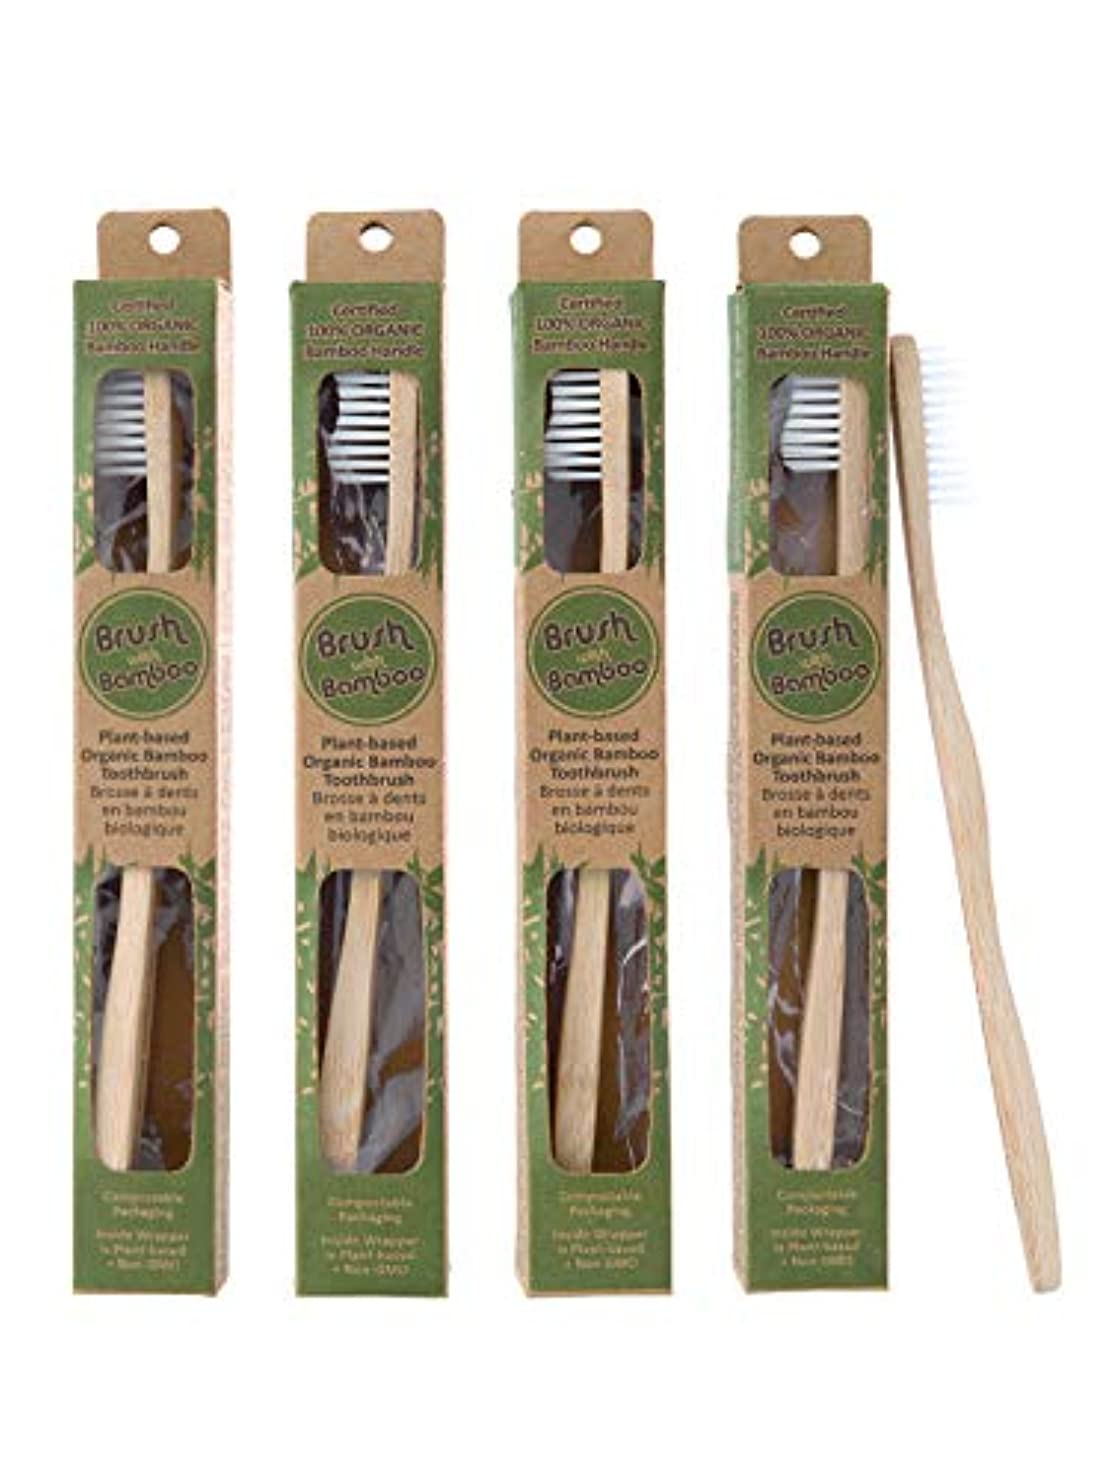 洞察力シーボード転送Plant-based Bamboo Toothbrush Adult Size 4 Pack by Brush with Bamboo